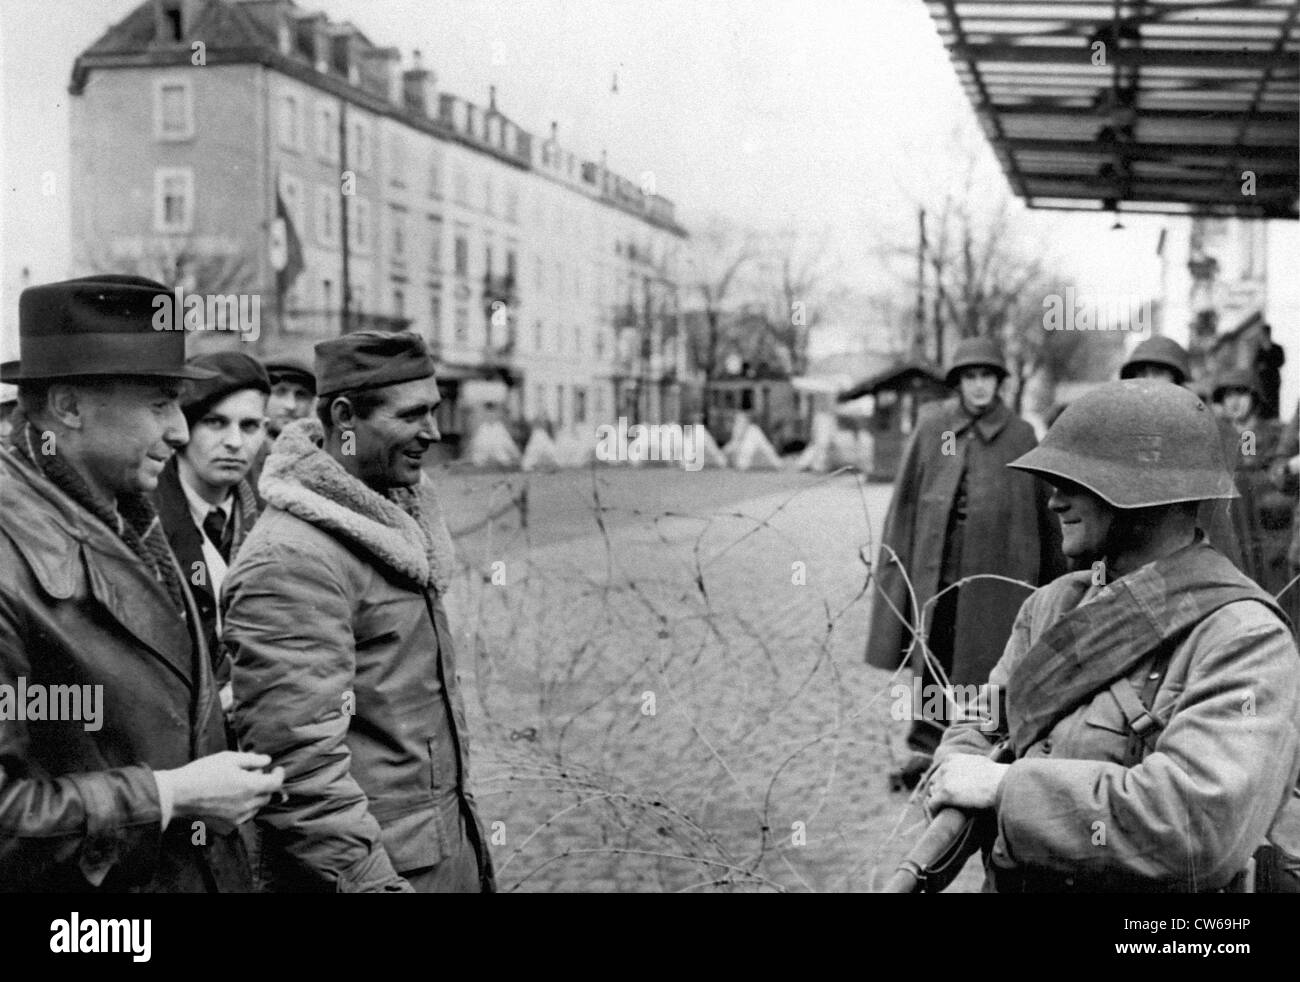 A U.S soldier talks with a Swiss Guard at St Louis (France) Fall 1944. - Stock Image